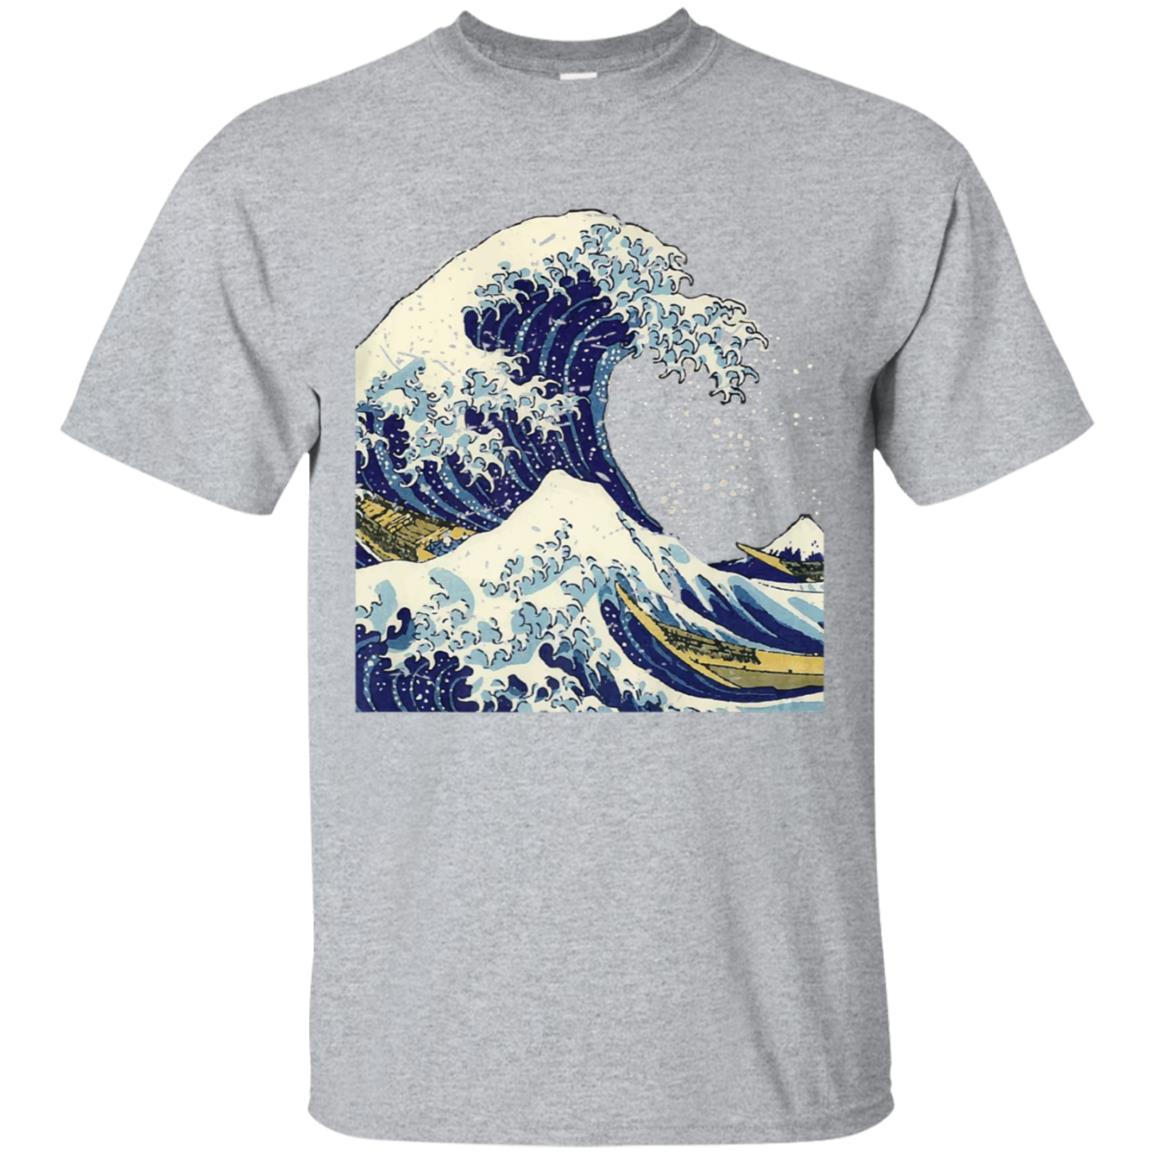 Distressed The Great Wave Hokusai T-Shirt 99promocode